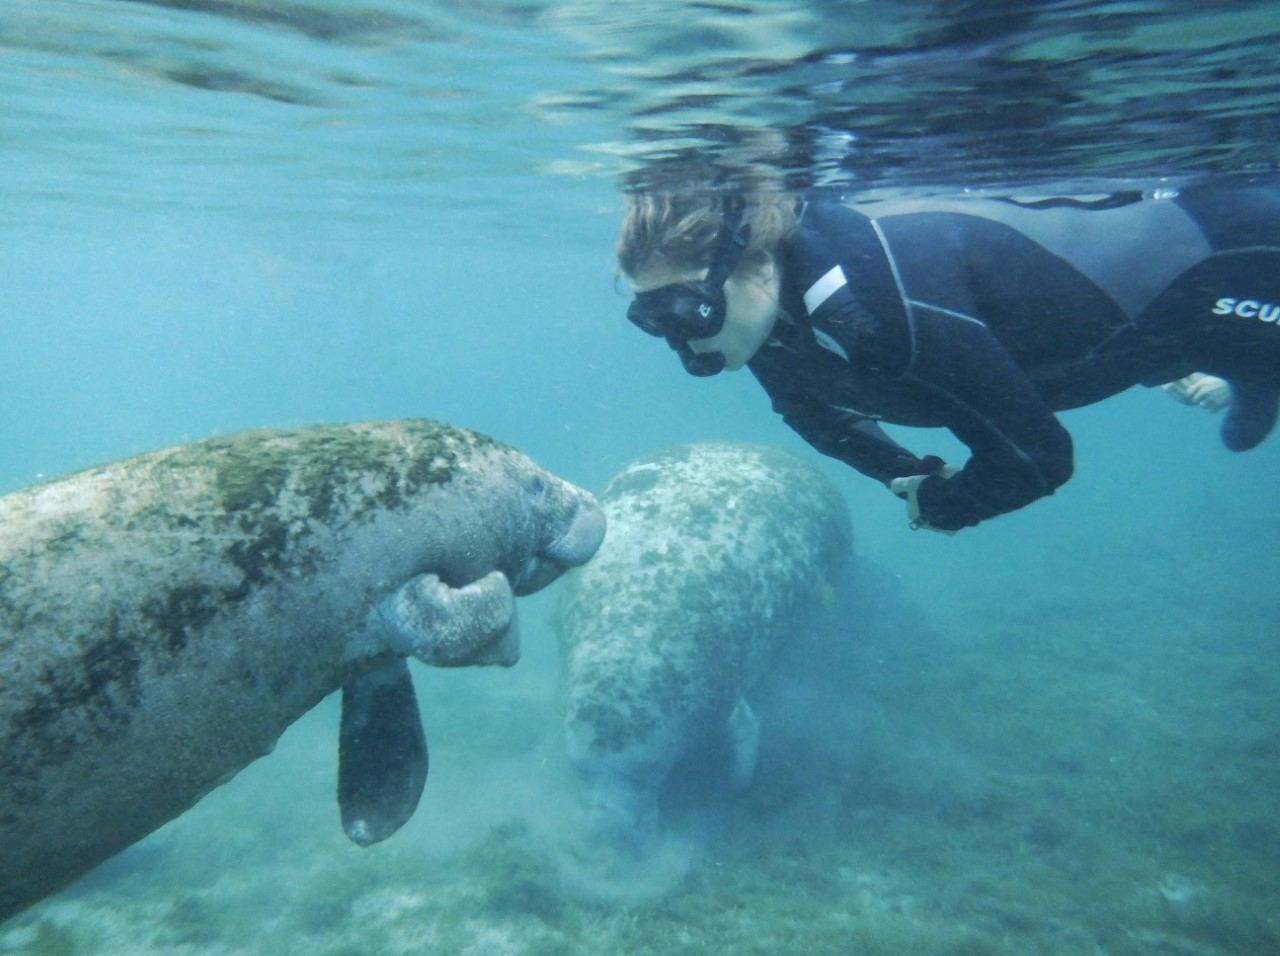 person in wetsuit with snorkel as 2 manatees swim near her